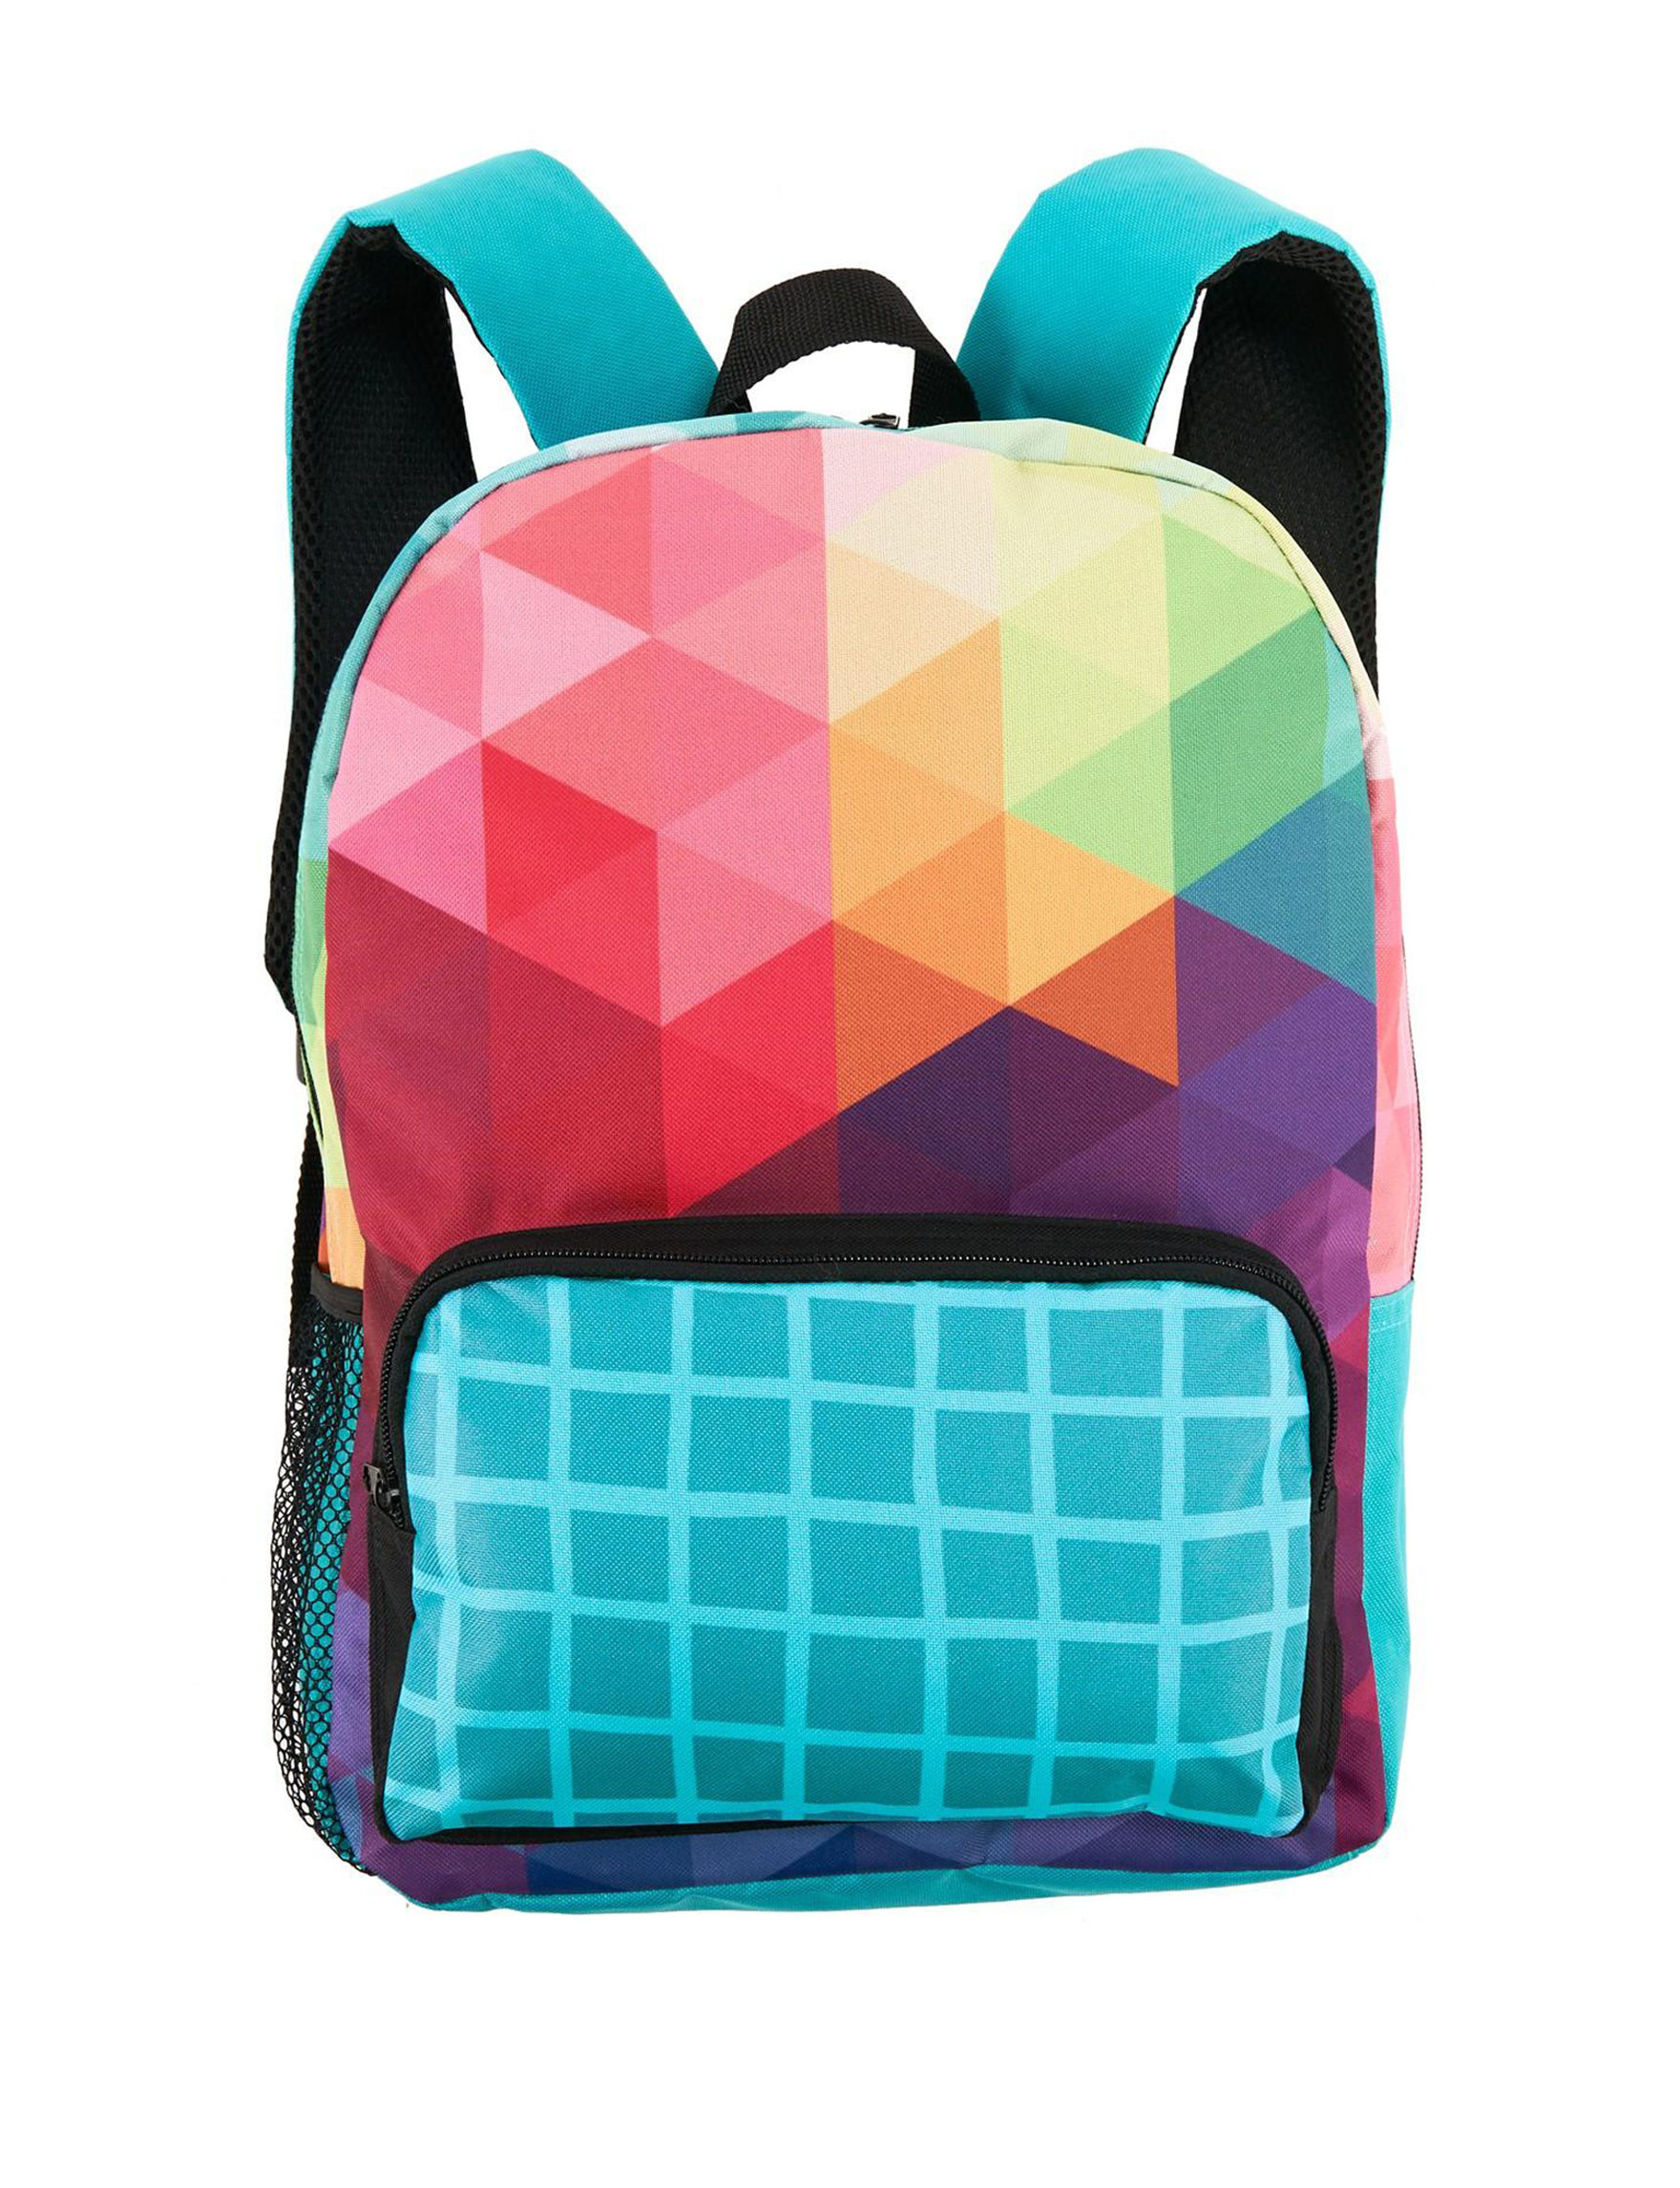 BuySeasons Rainbow Bookbags & Backpacks